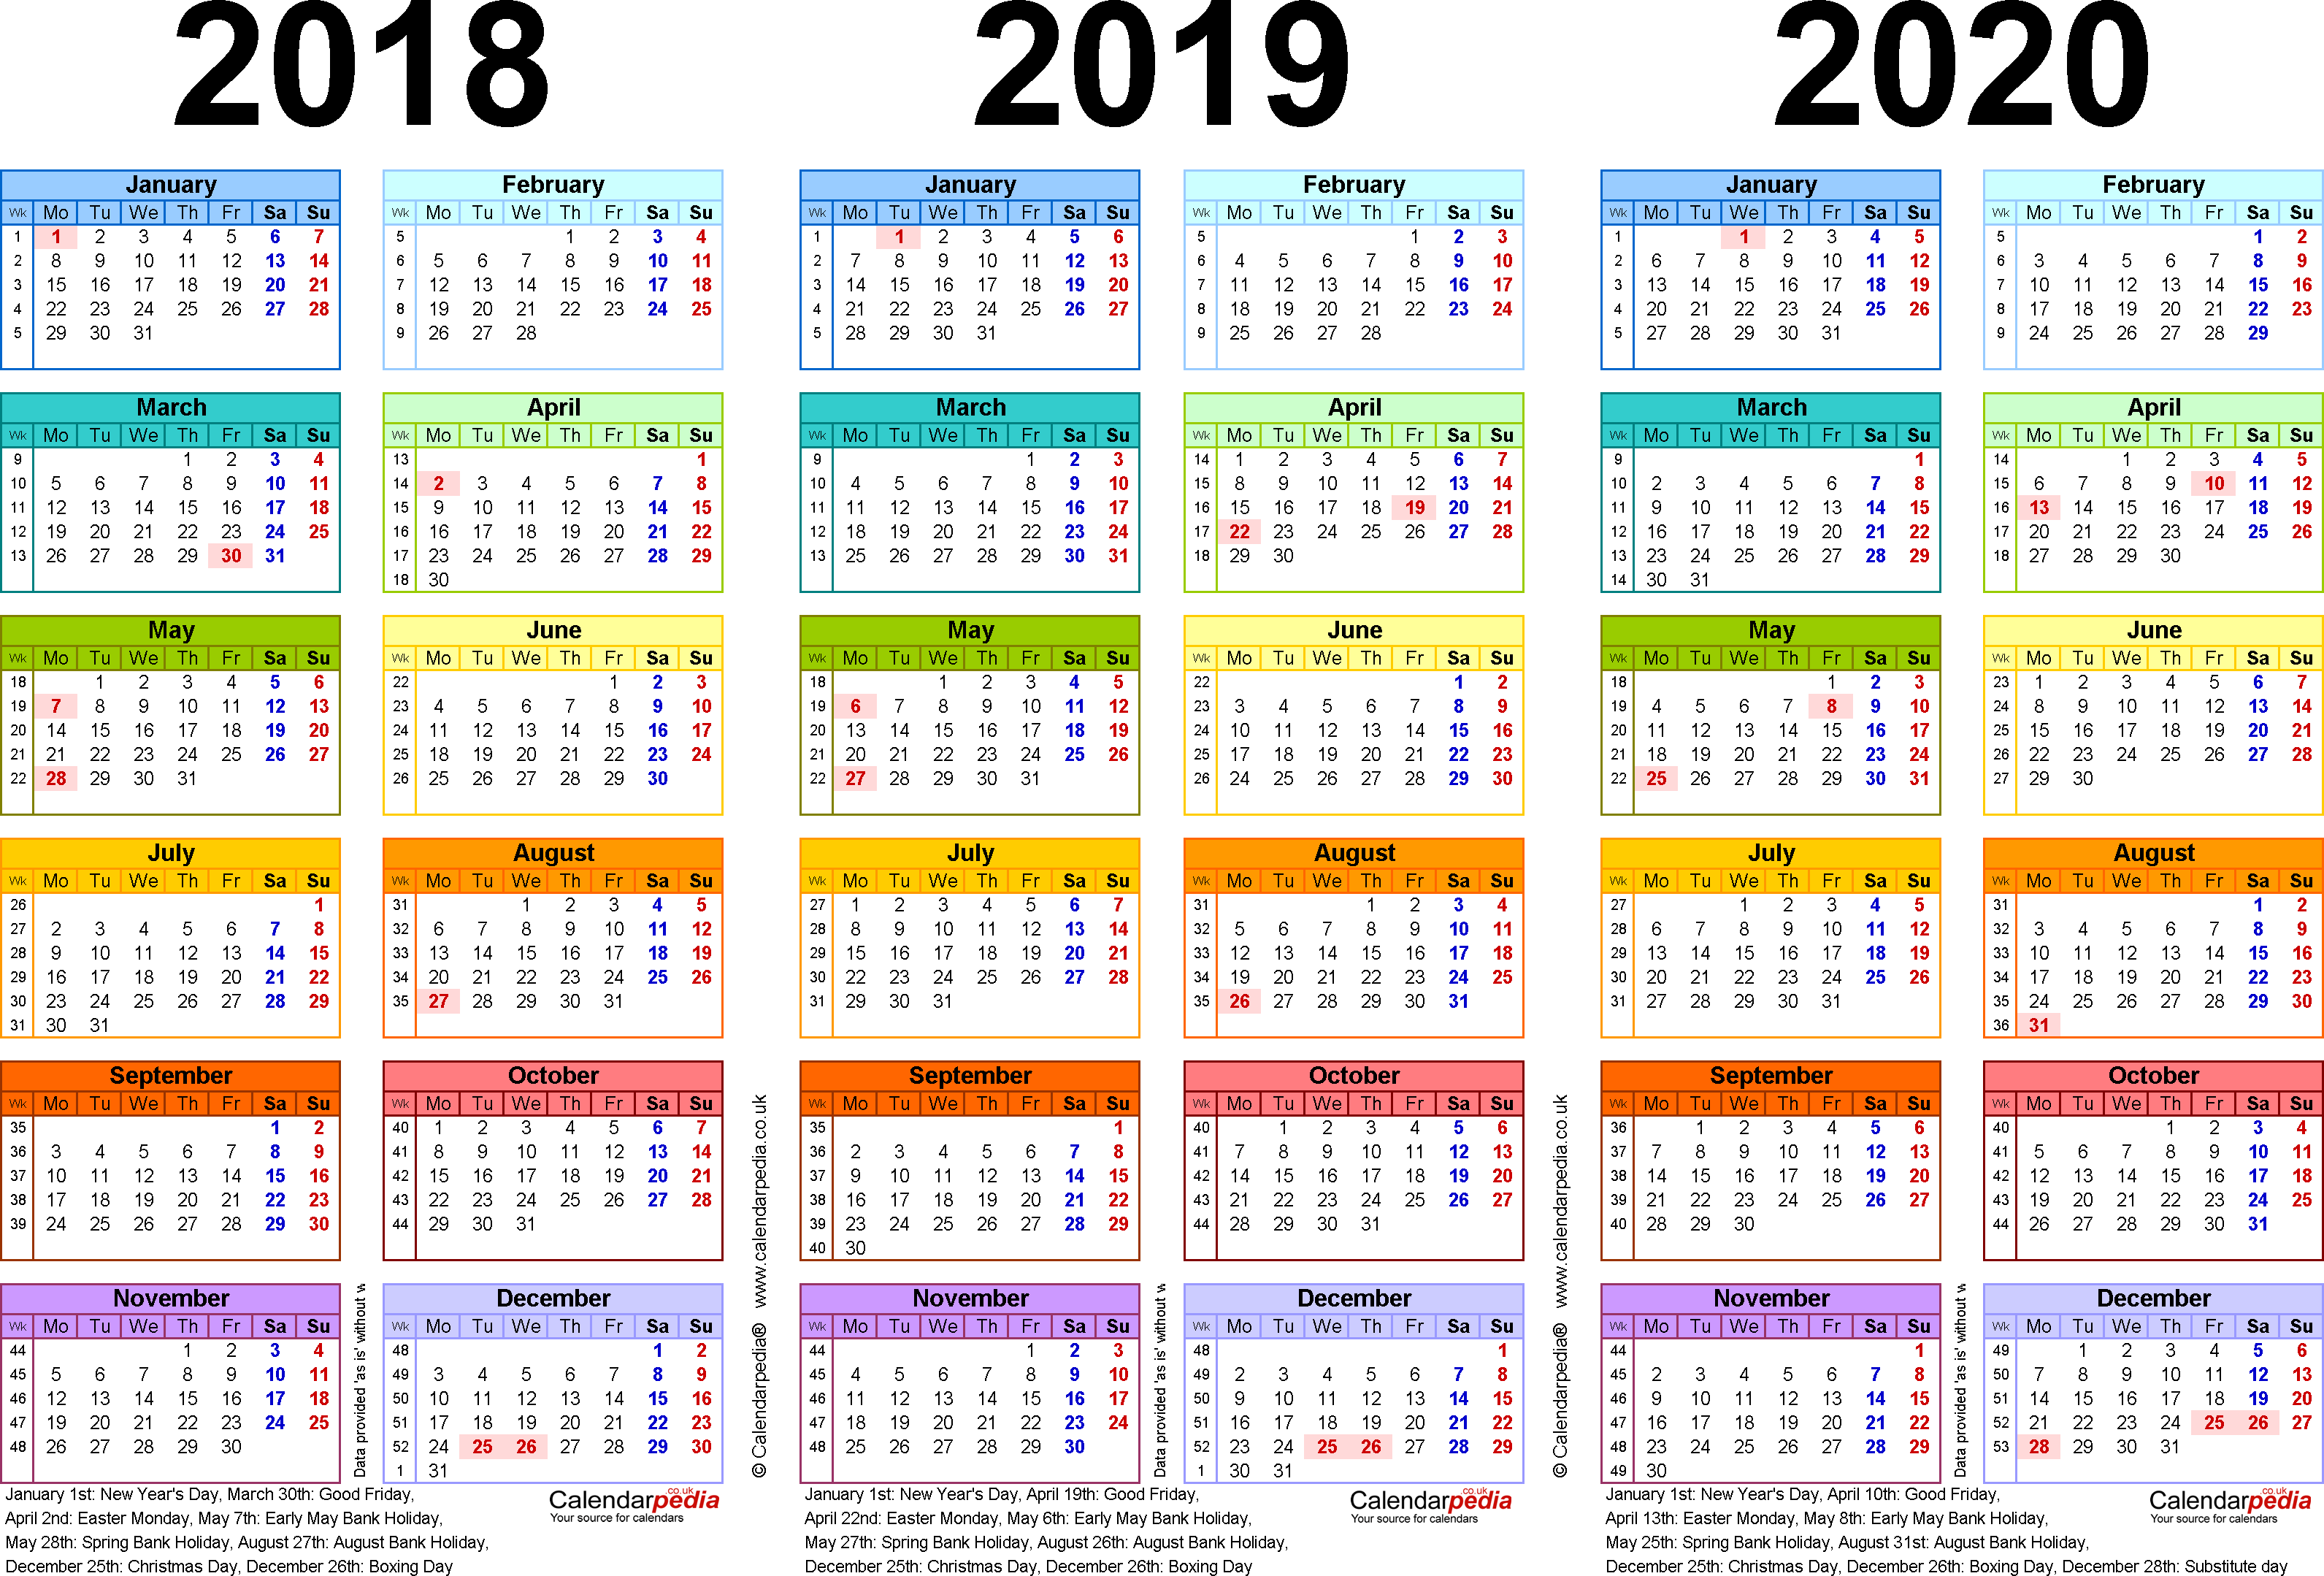 Download Template 1: PDF template for three year calendar 2018-2020 in colour (landscape orientation, 1 page, A4)